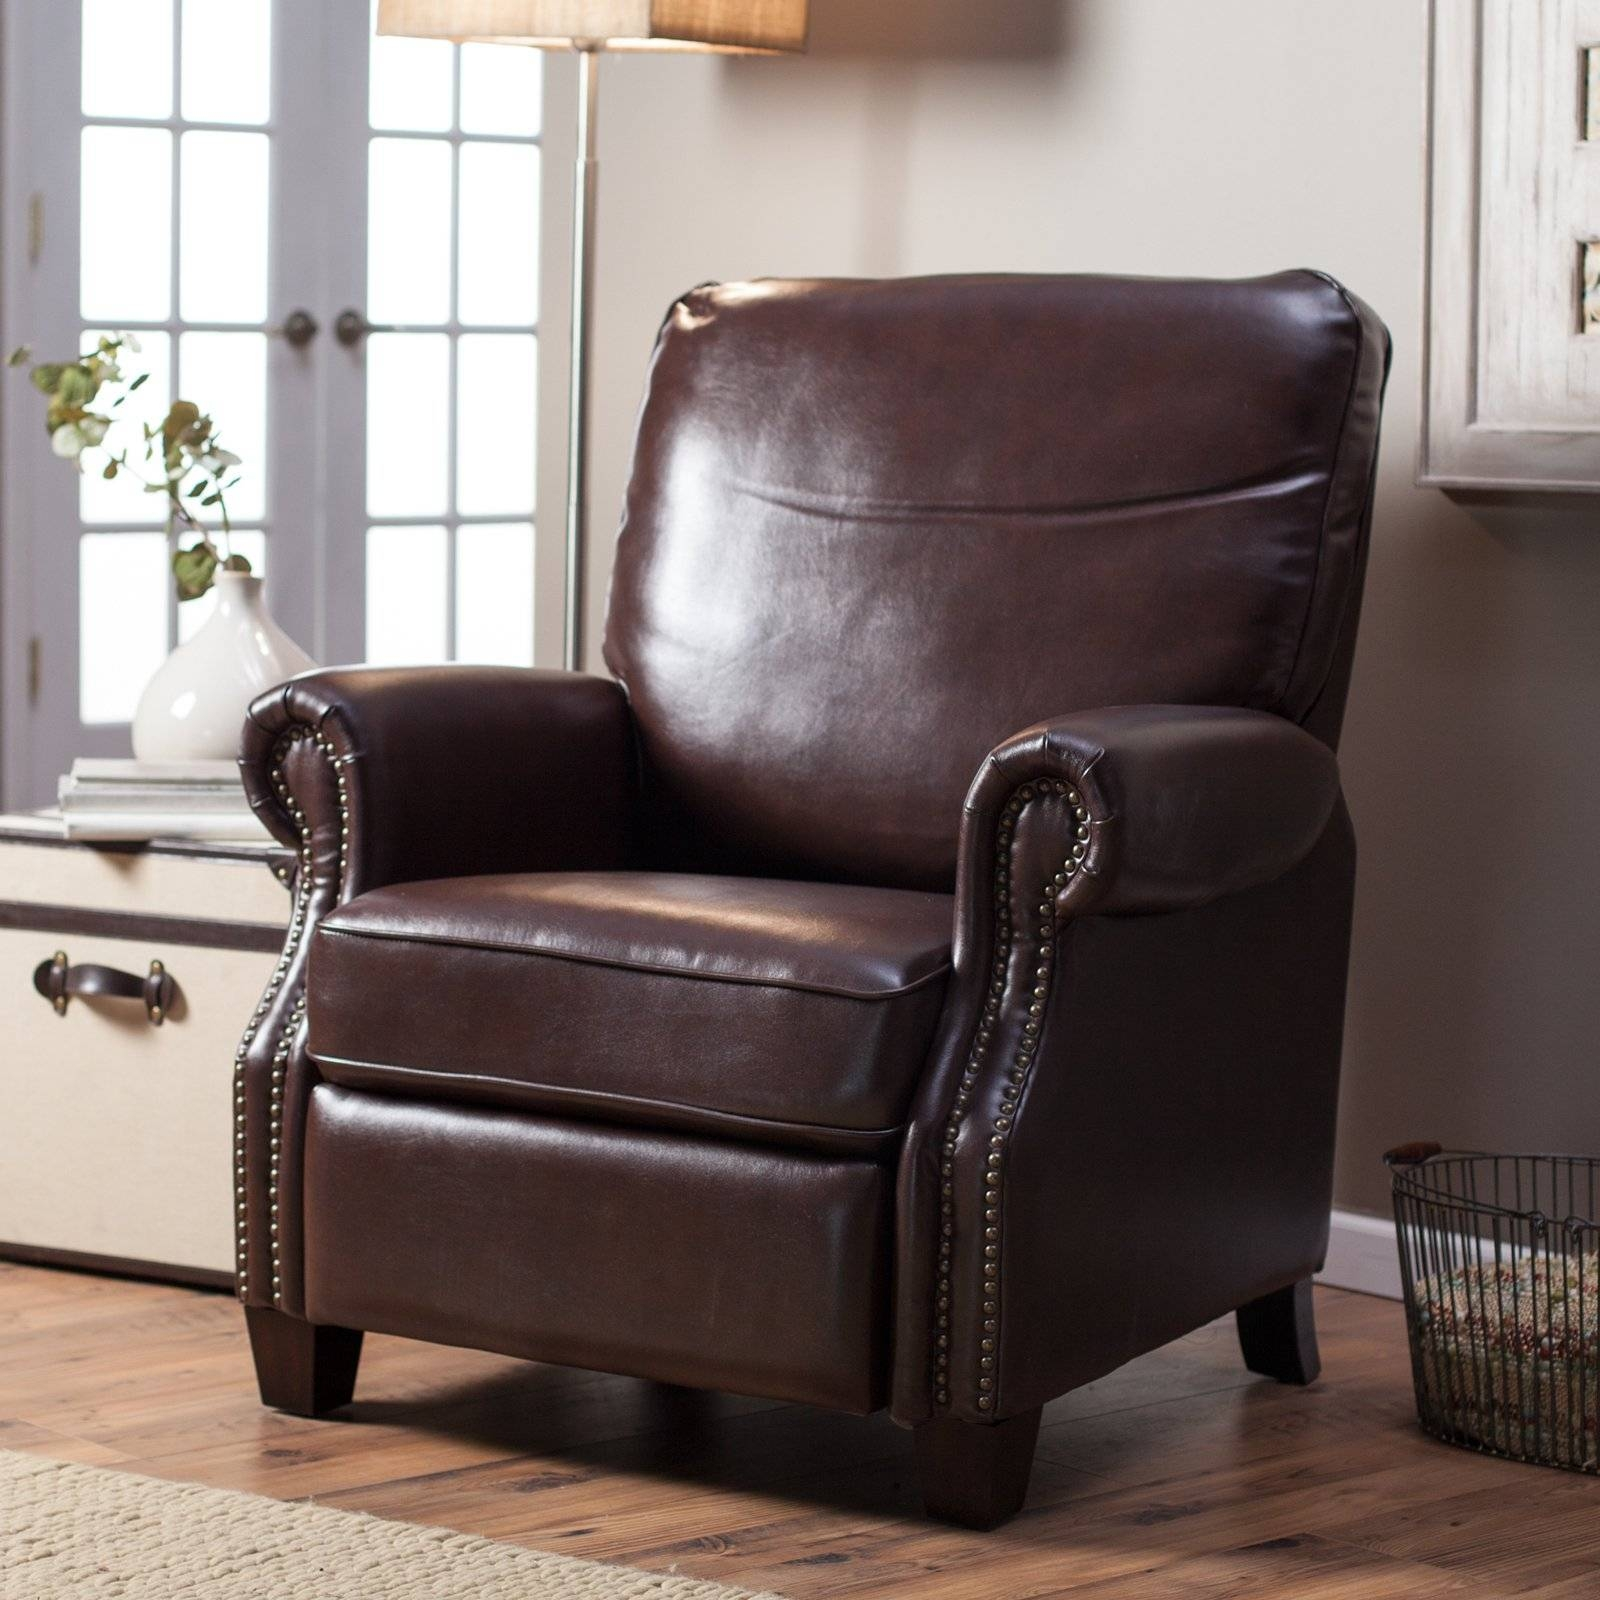 Abbyson Hogan Italian Leather Reclining Chair With Nailheads Intended For Abbyson Recliners (View 5 of 15)